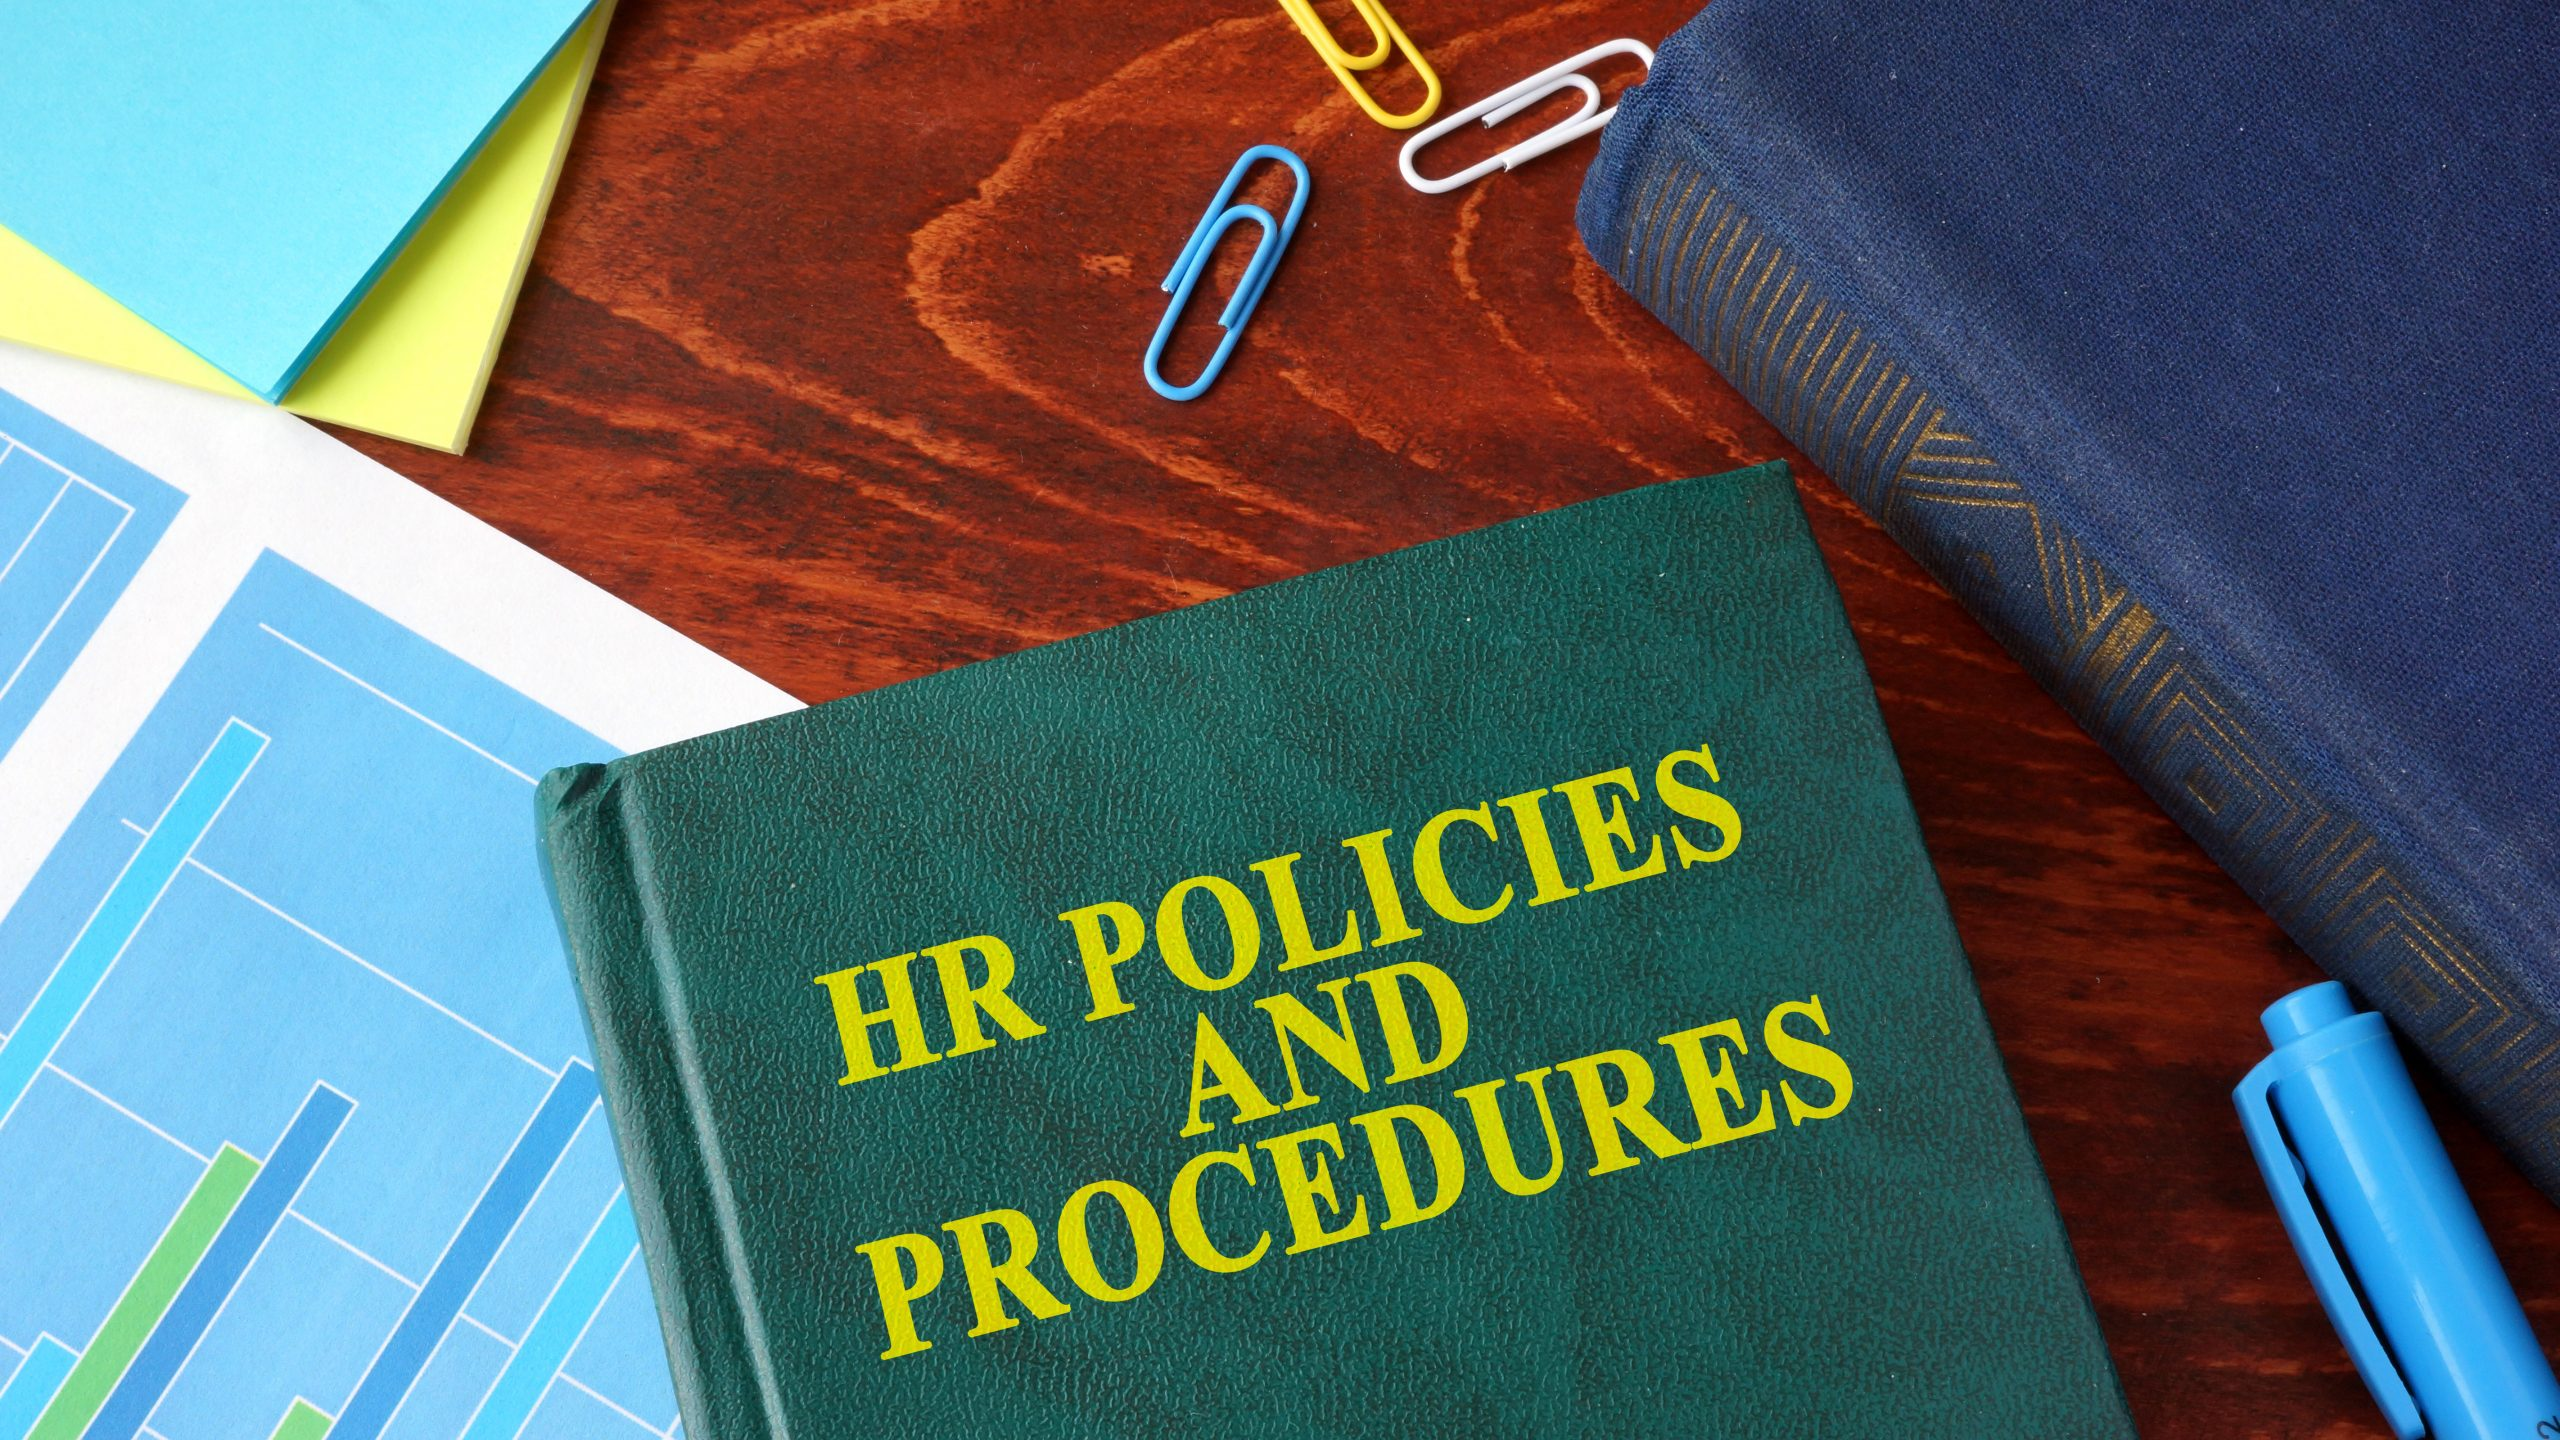 Why are HR policies and procedures important?